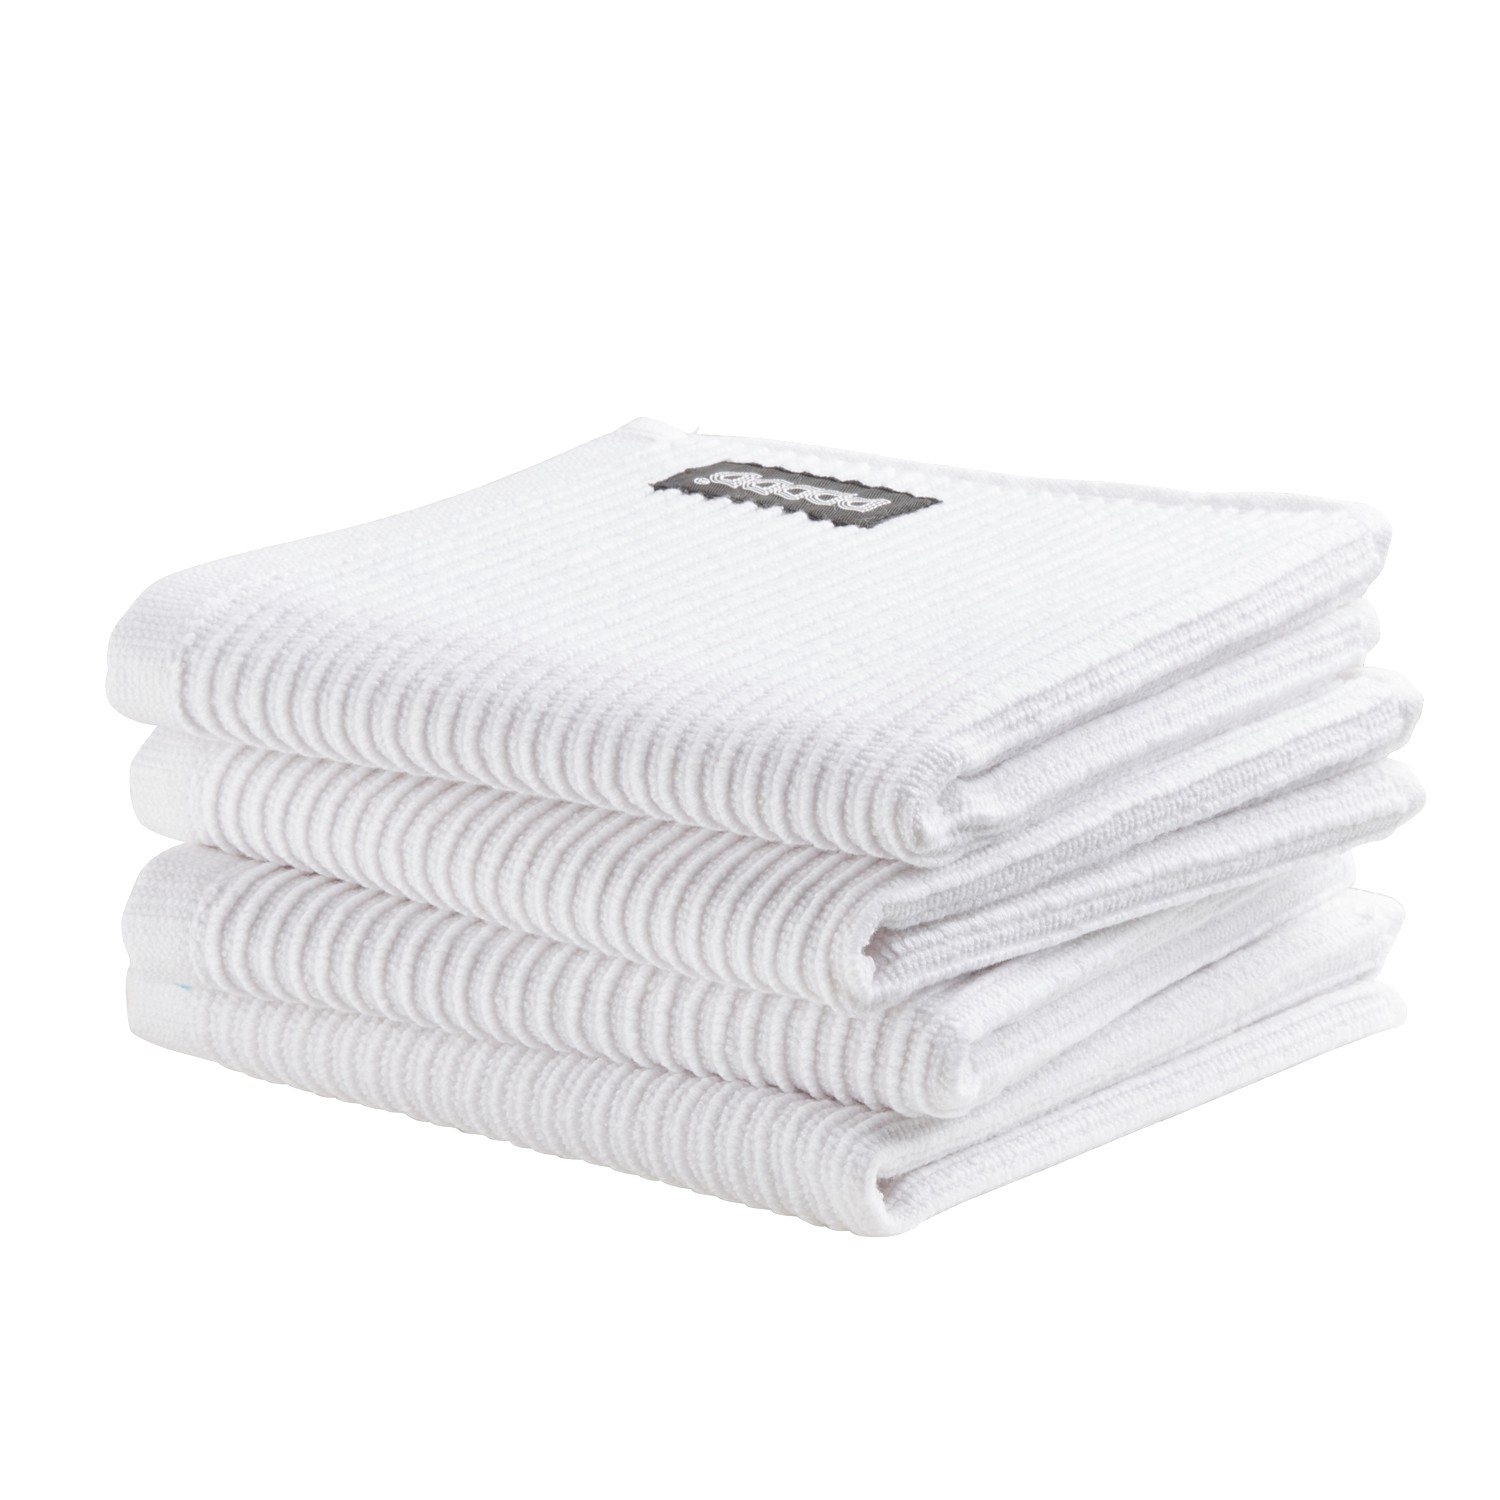 Vaatdoek Basic Clean | Neutral white | 30 x 30 cm